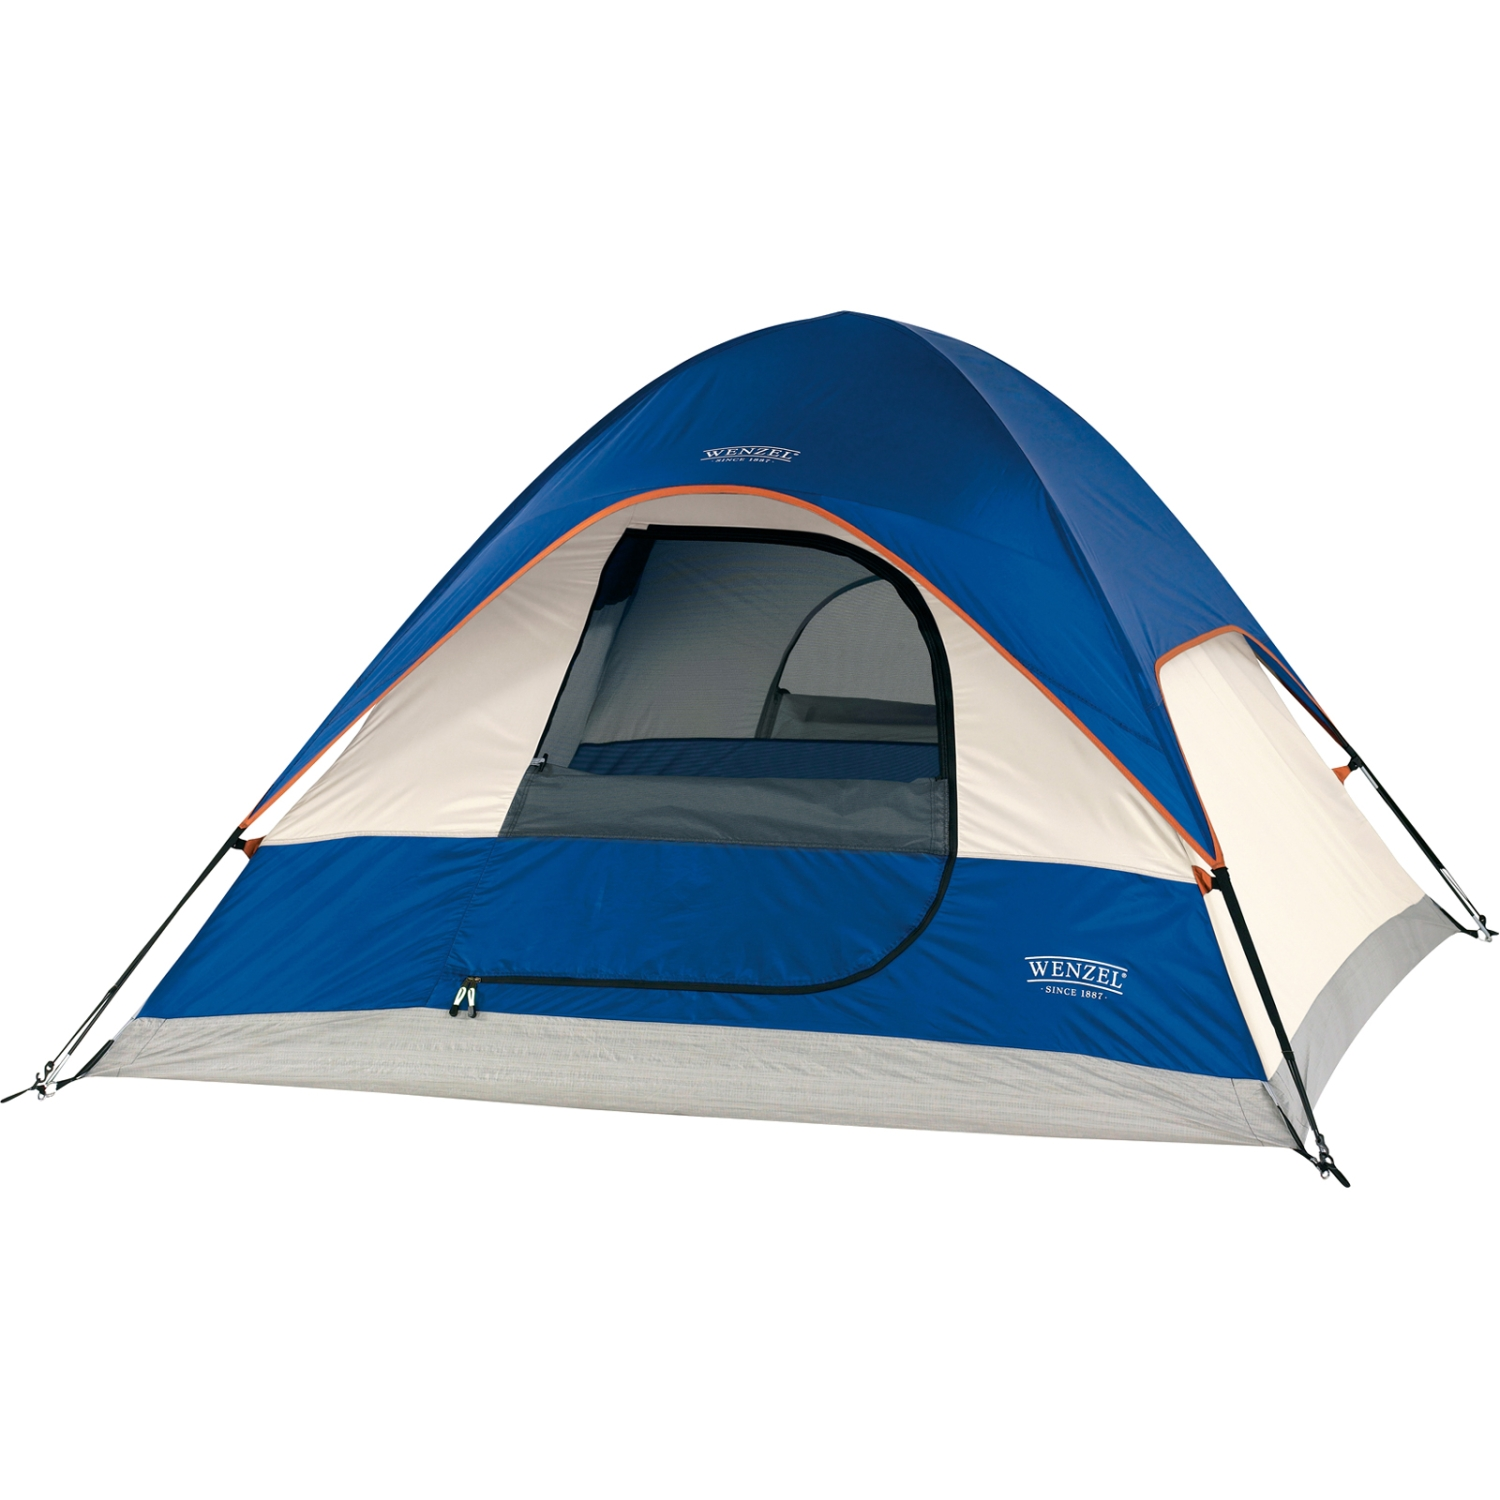 Wenzel 36420 Ridgeline Sport Dome C&ing 3 Person Tent  sc 1 st  Walmart & Wenzel 36420 Ridgeline Sport Dome Camping 3 Person Tent - Walmart.com